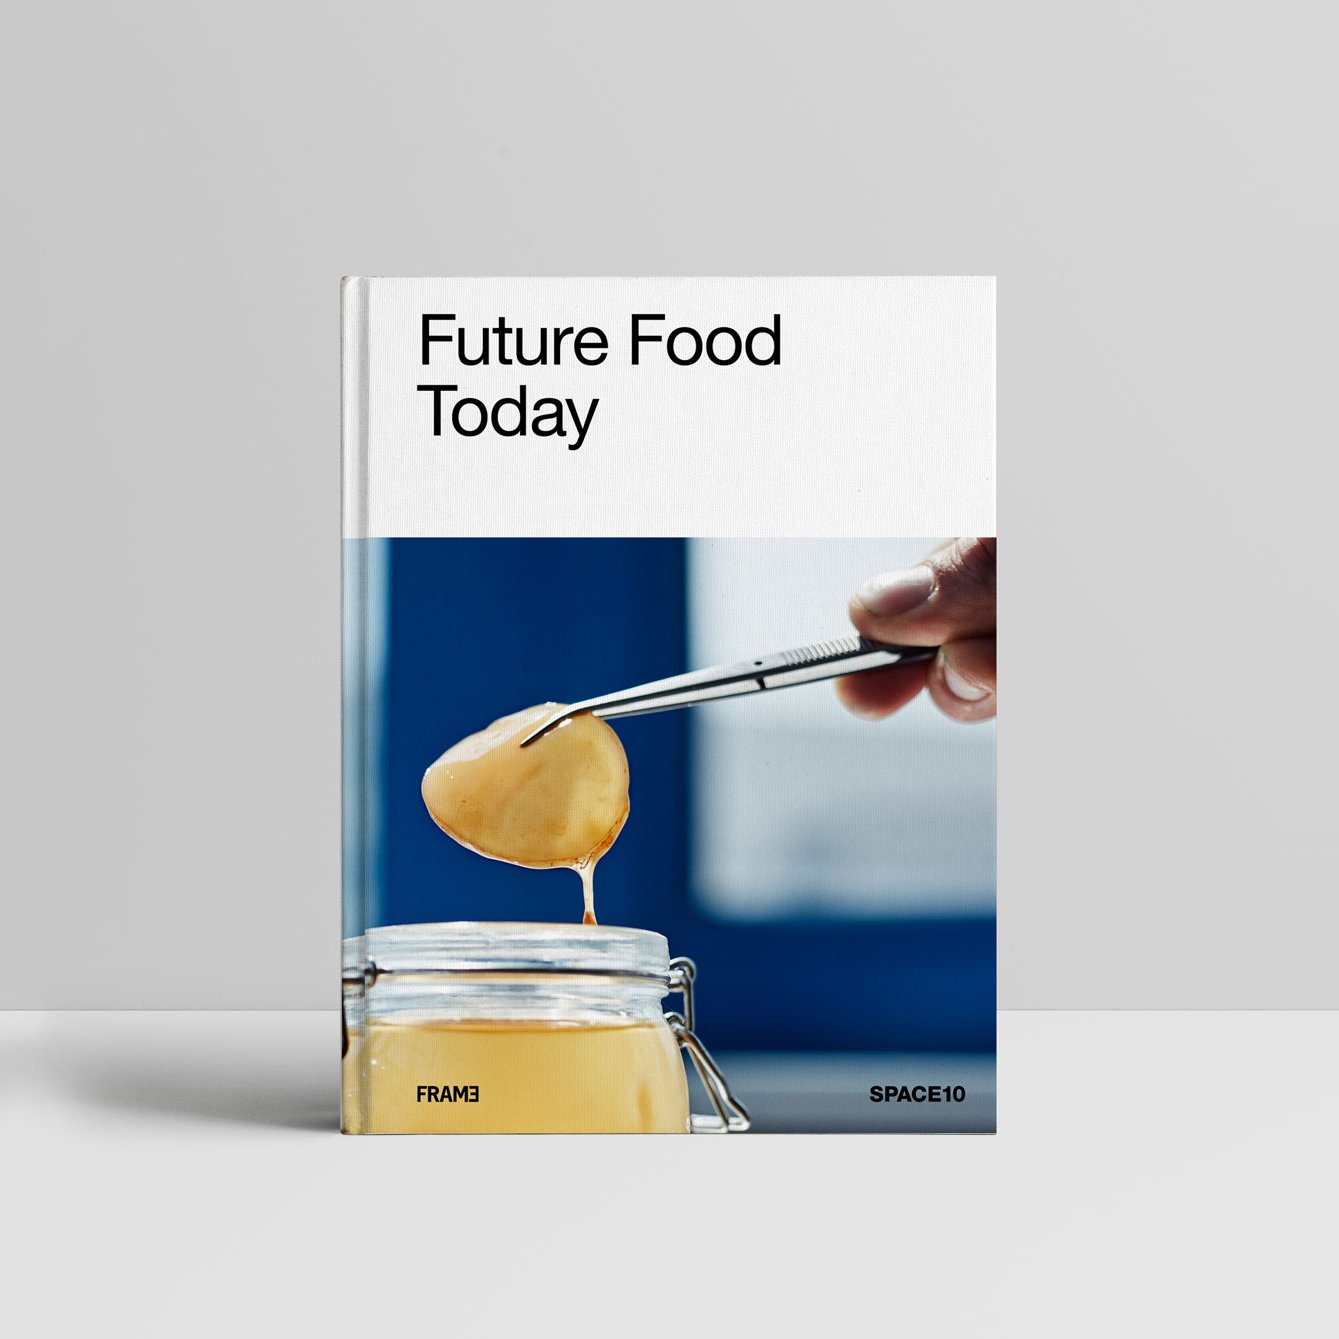 Future Food Today: A Cookbook by SPACE10